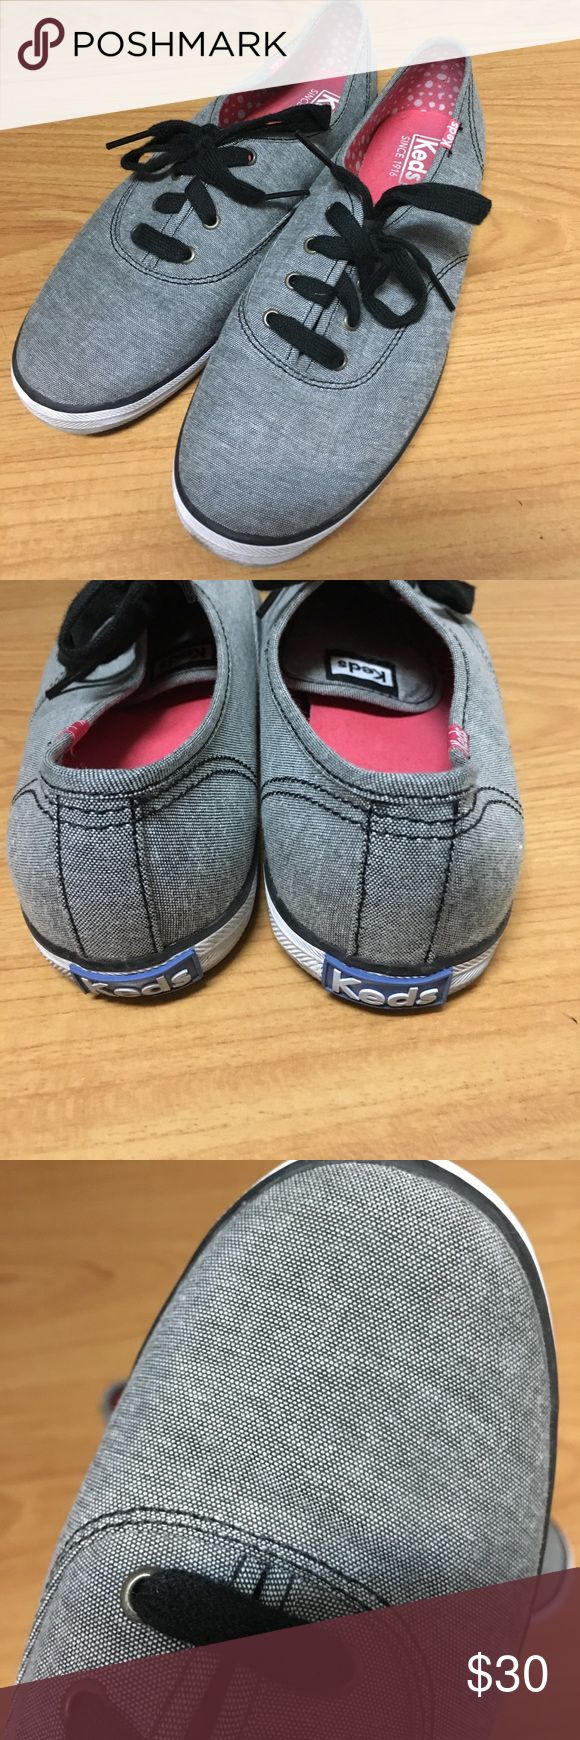 Gently worn Keds tennis shoes Fairly new! Cute and stylish tennis shoes. Still in good condition Keds Shoes Sneakers